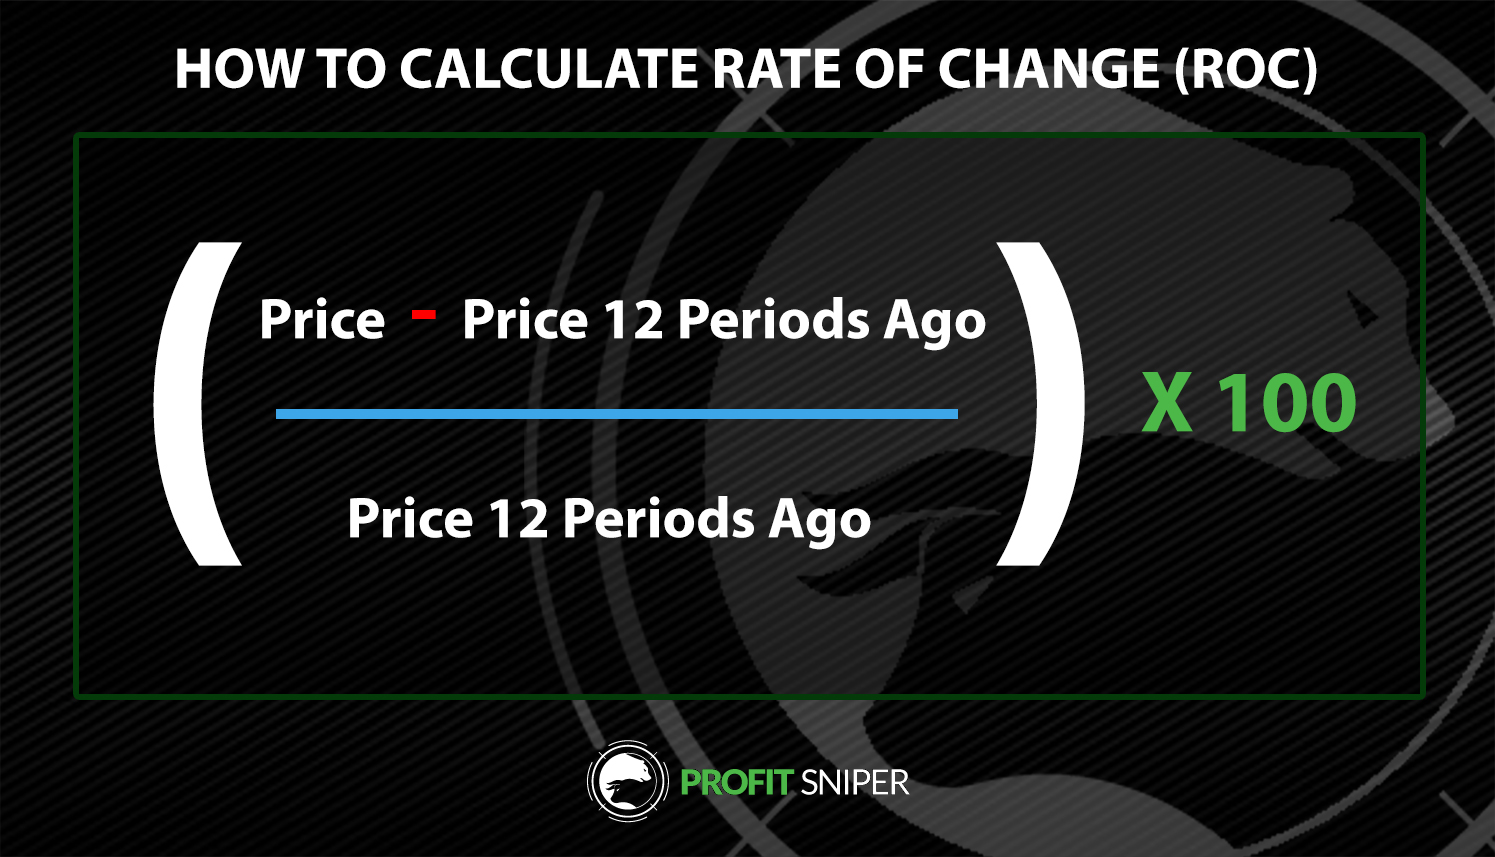 How to calculate Rate of Change in Cryptocurrency